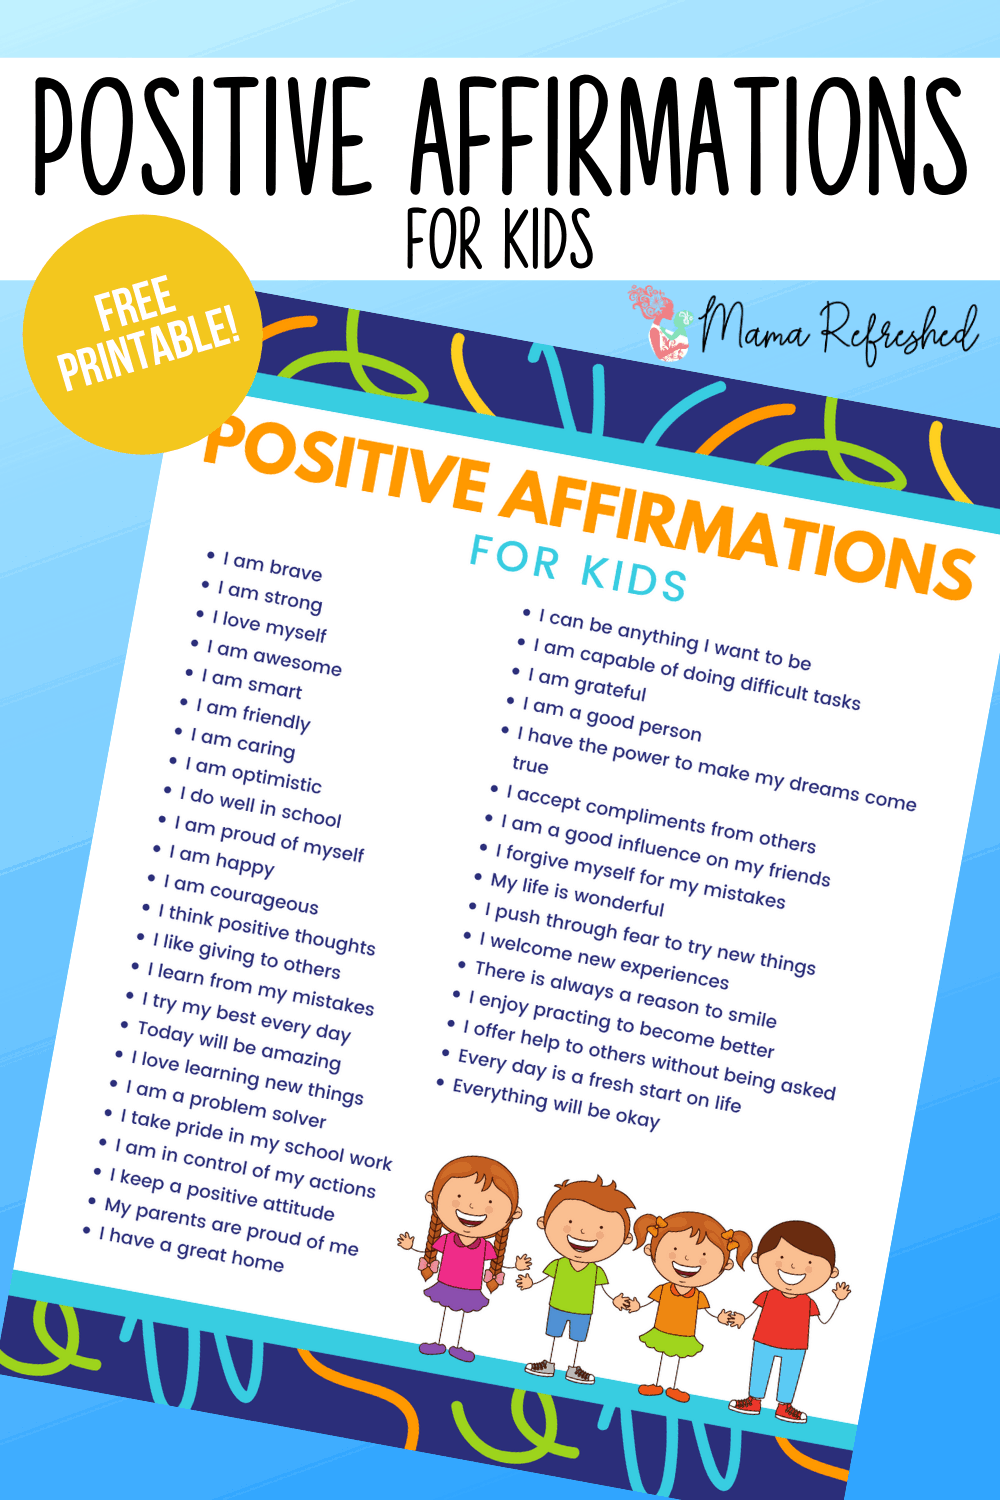 Daily Affirmations for Kids (Free Printable)